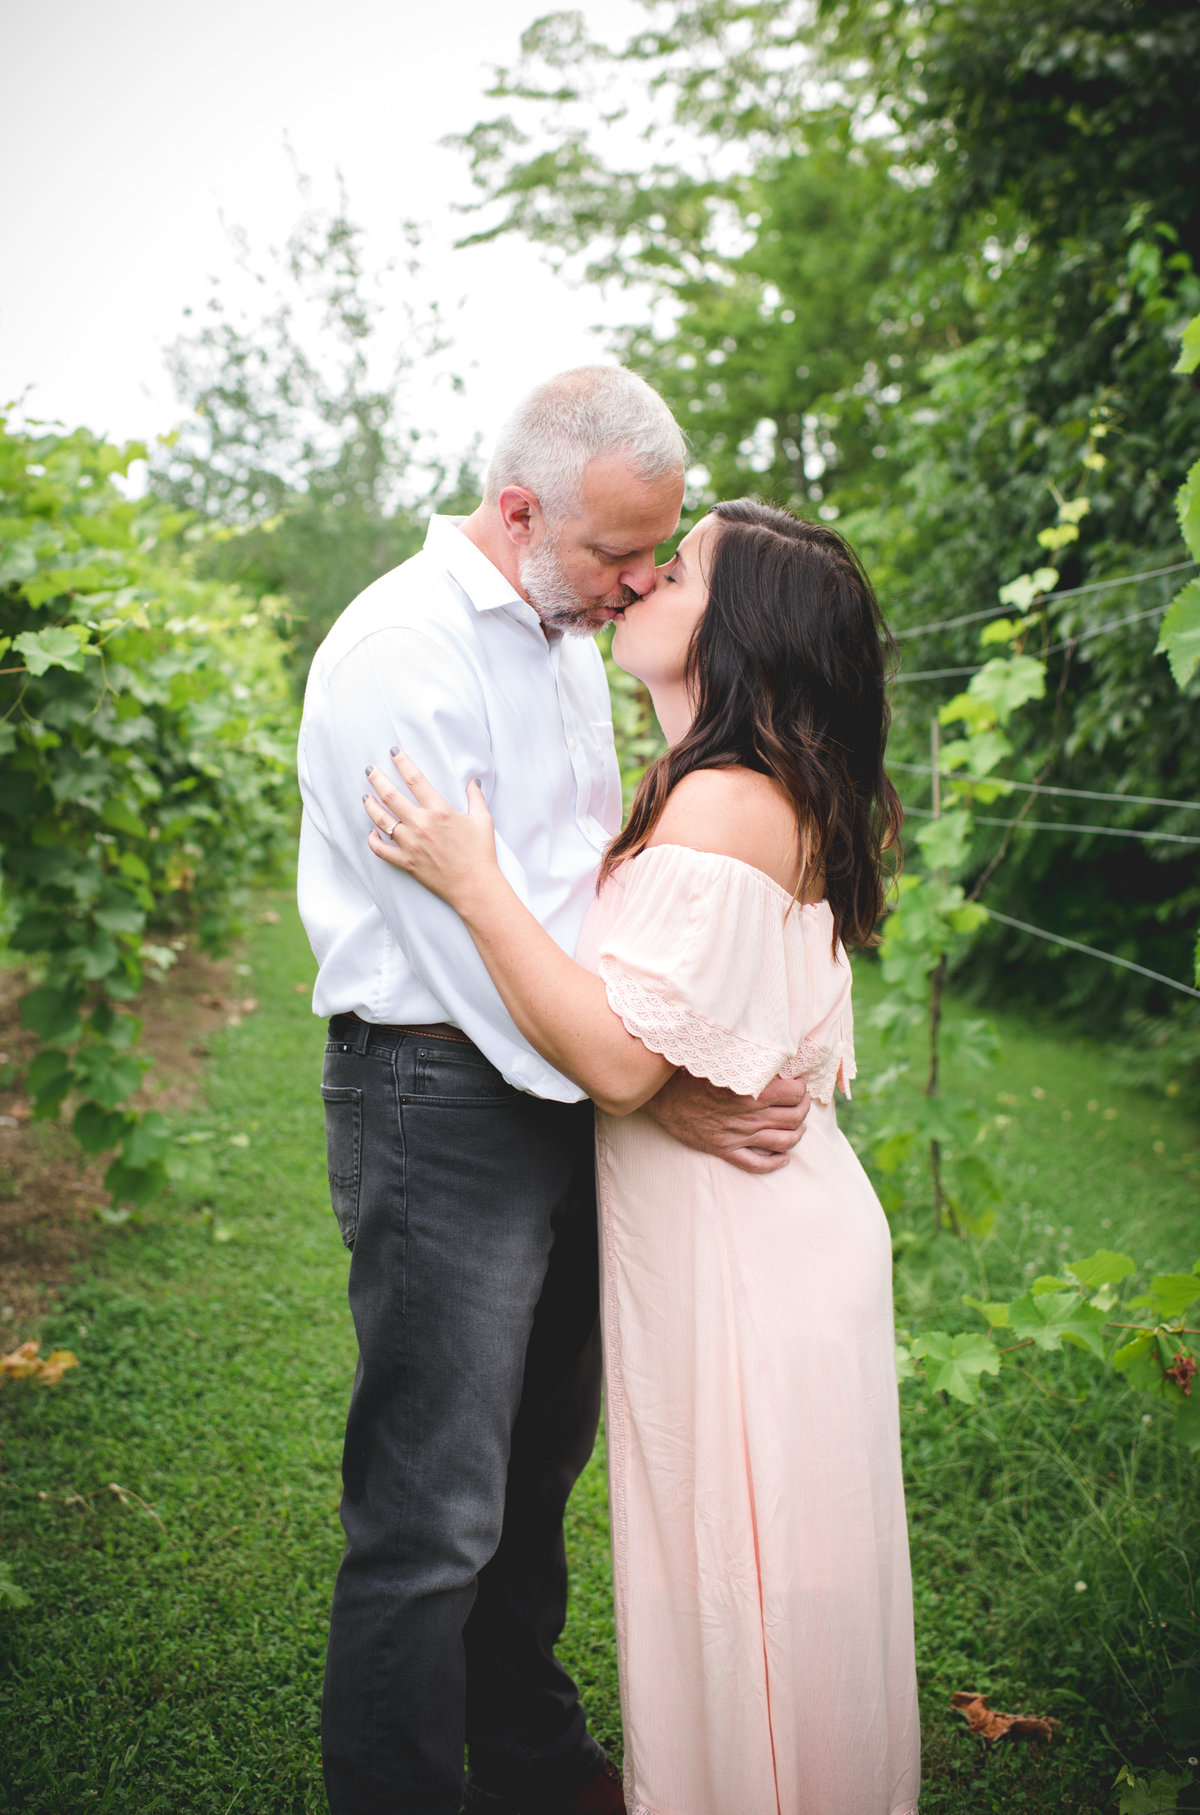 Tennessee Wedding Photographer - Mint Magnolia Photography0026